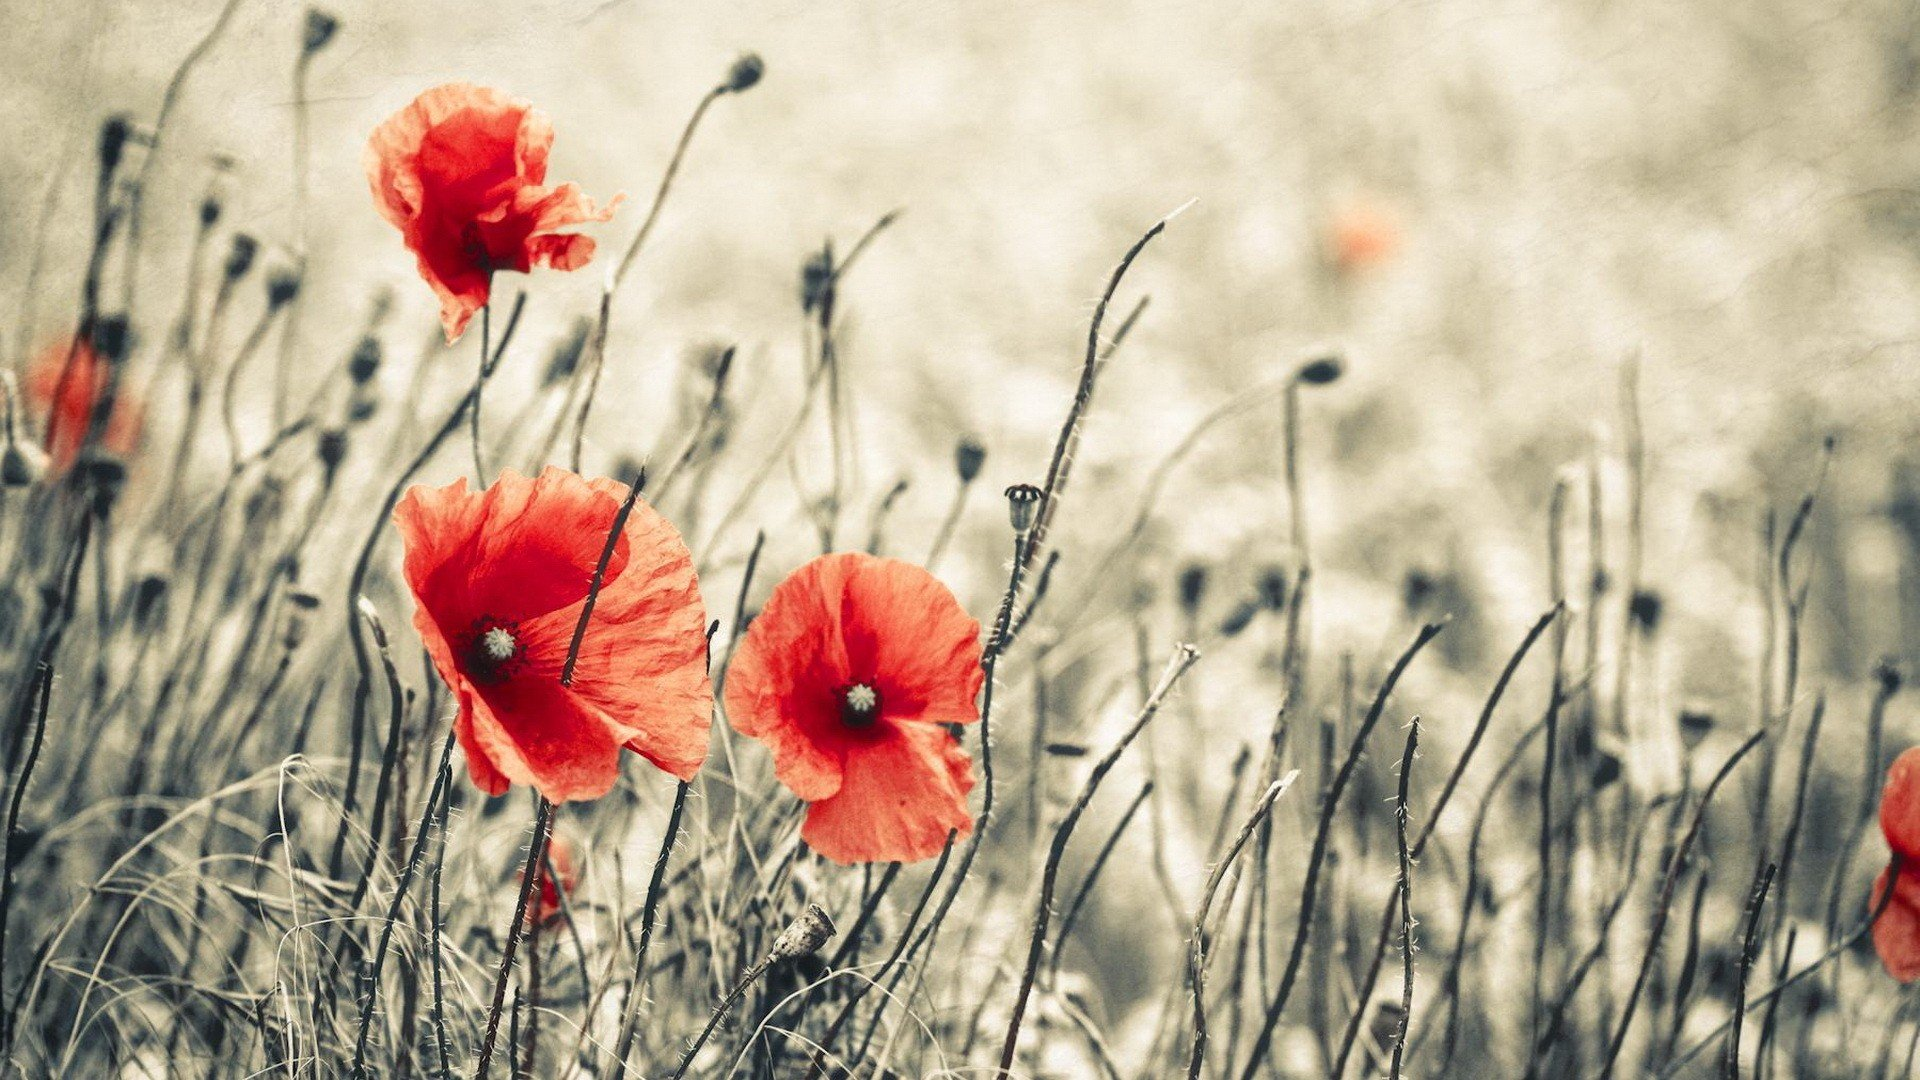 Poppy Wallpaper For Computer HDQ Beautiful Poppy Images